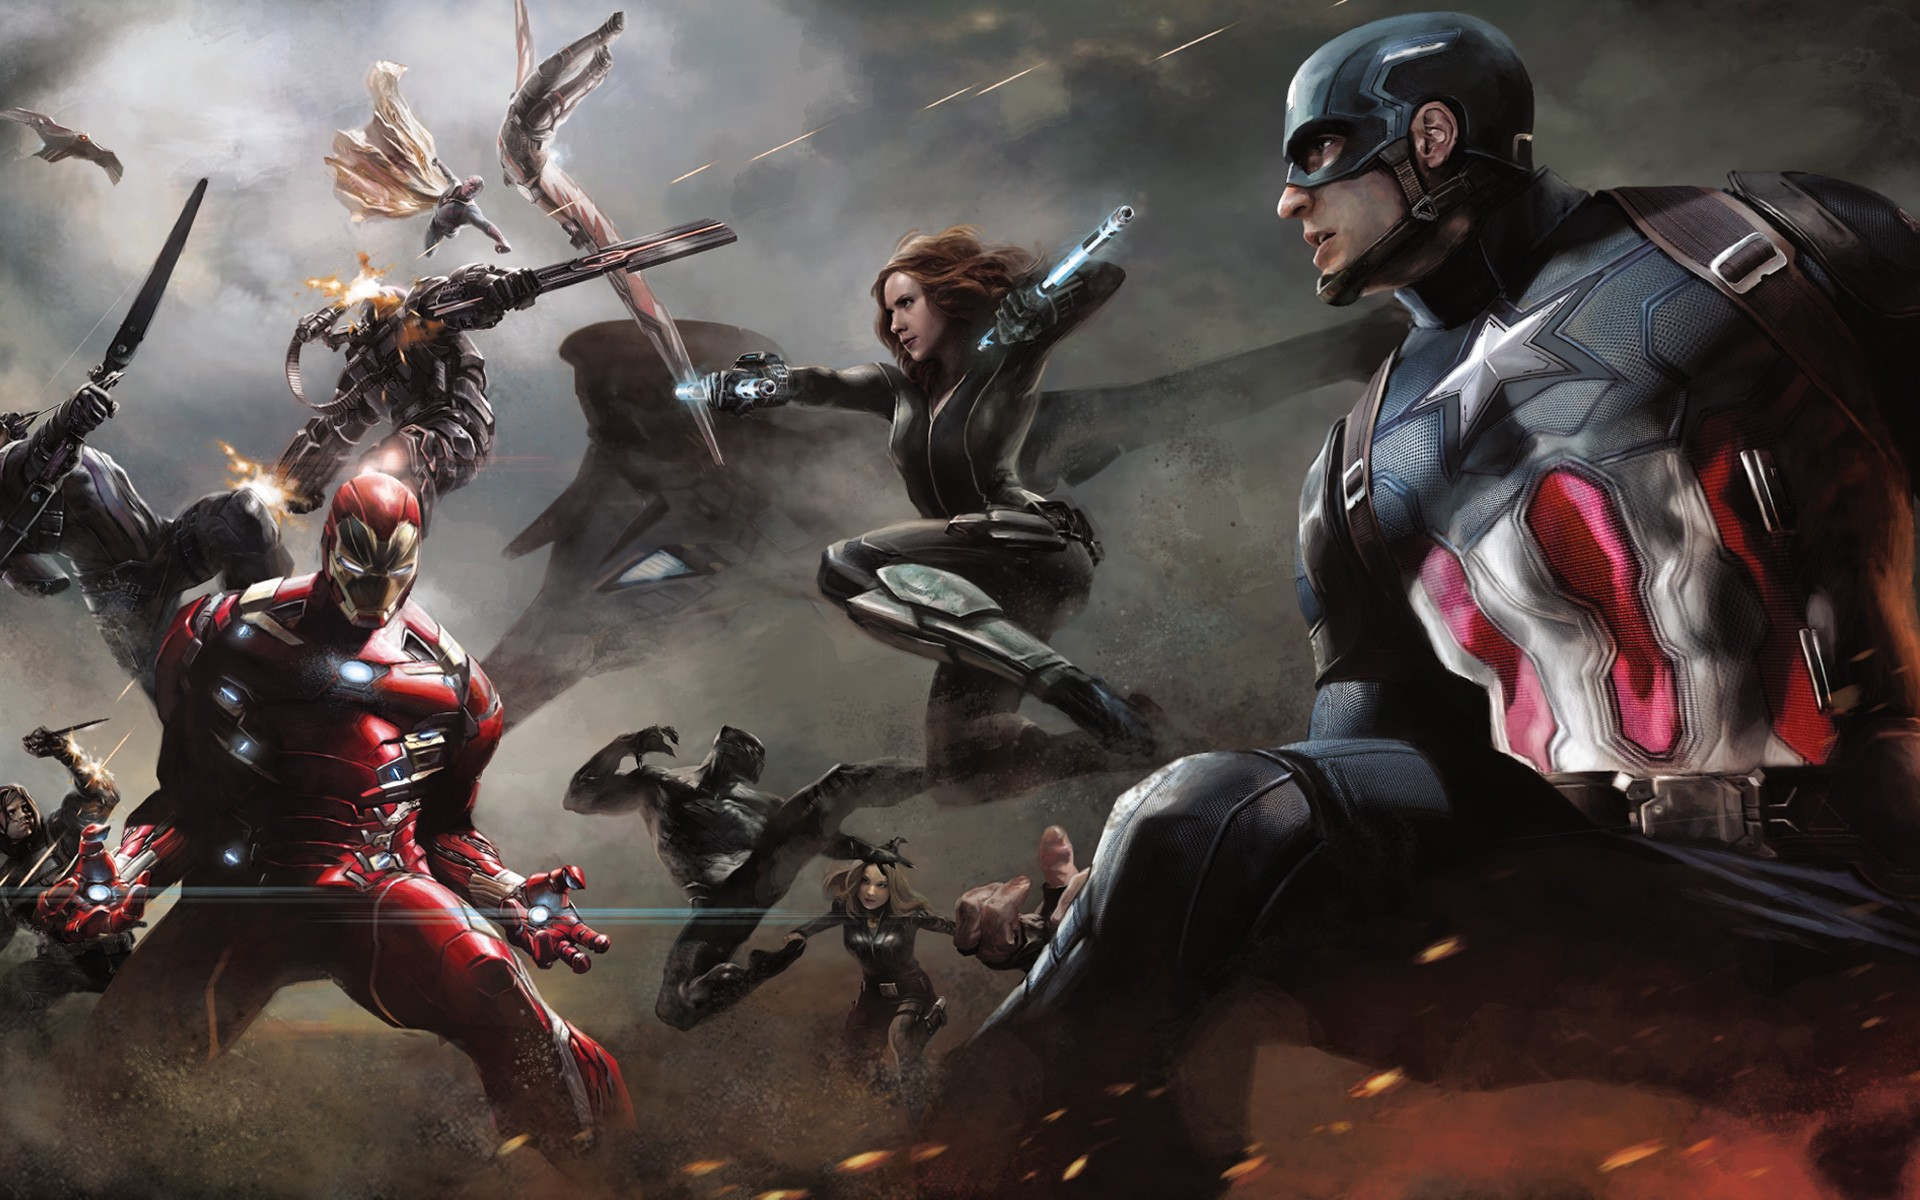 Ultra Hd Wallpapers Cars Captain America Civil War Artwork Wallpapers Hd